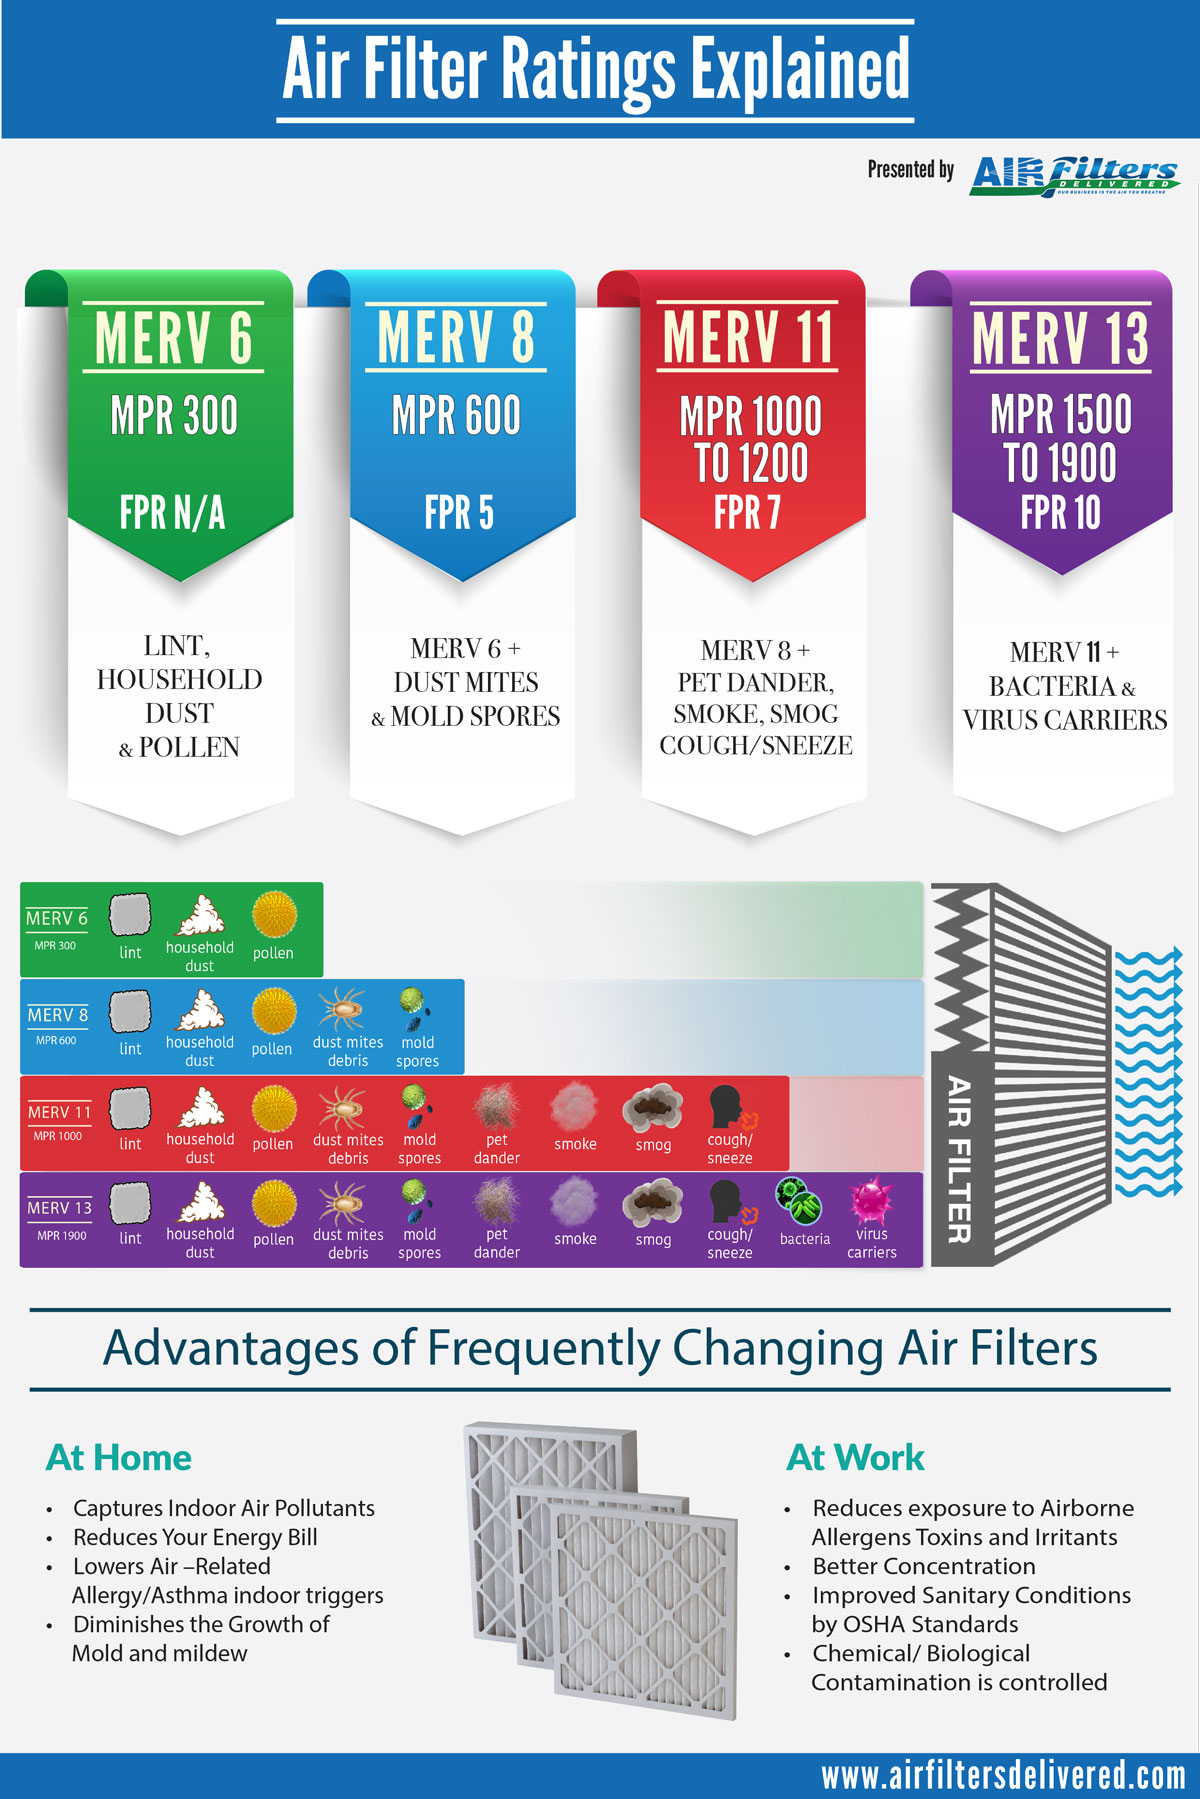 Best furnace air filters for allergies - The_merv_ratings_afd